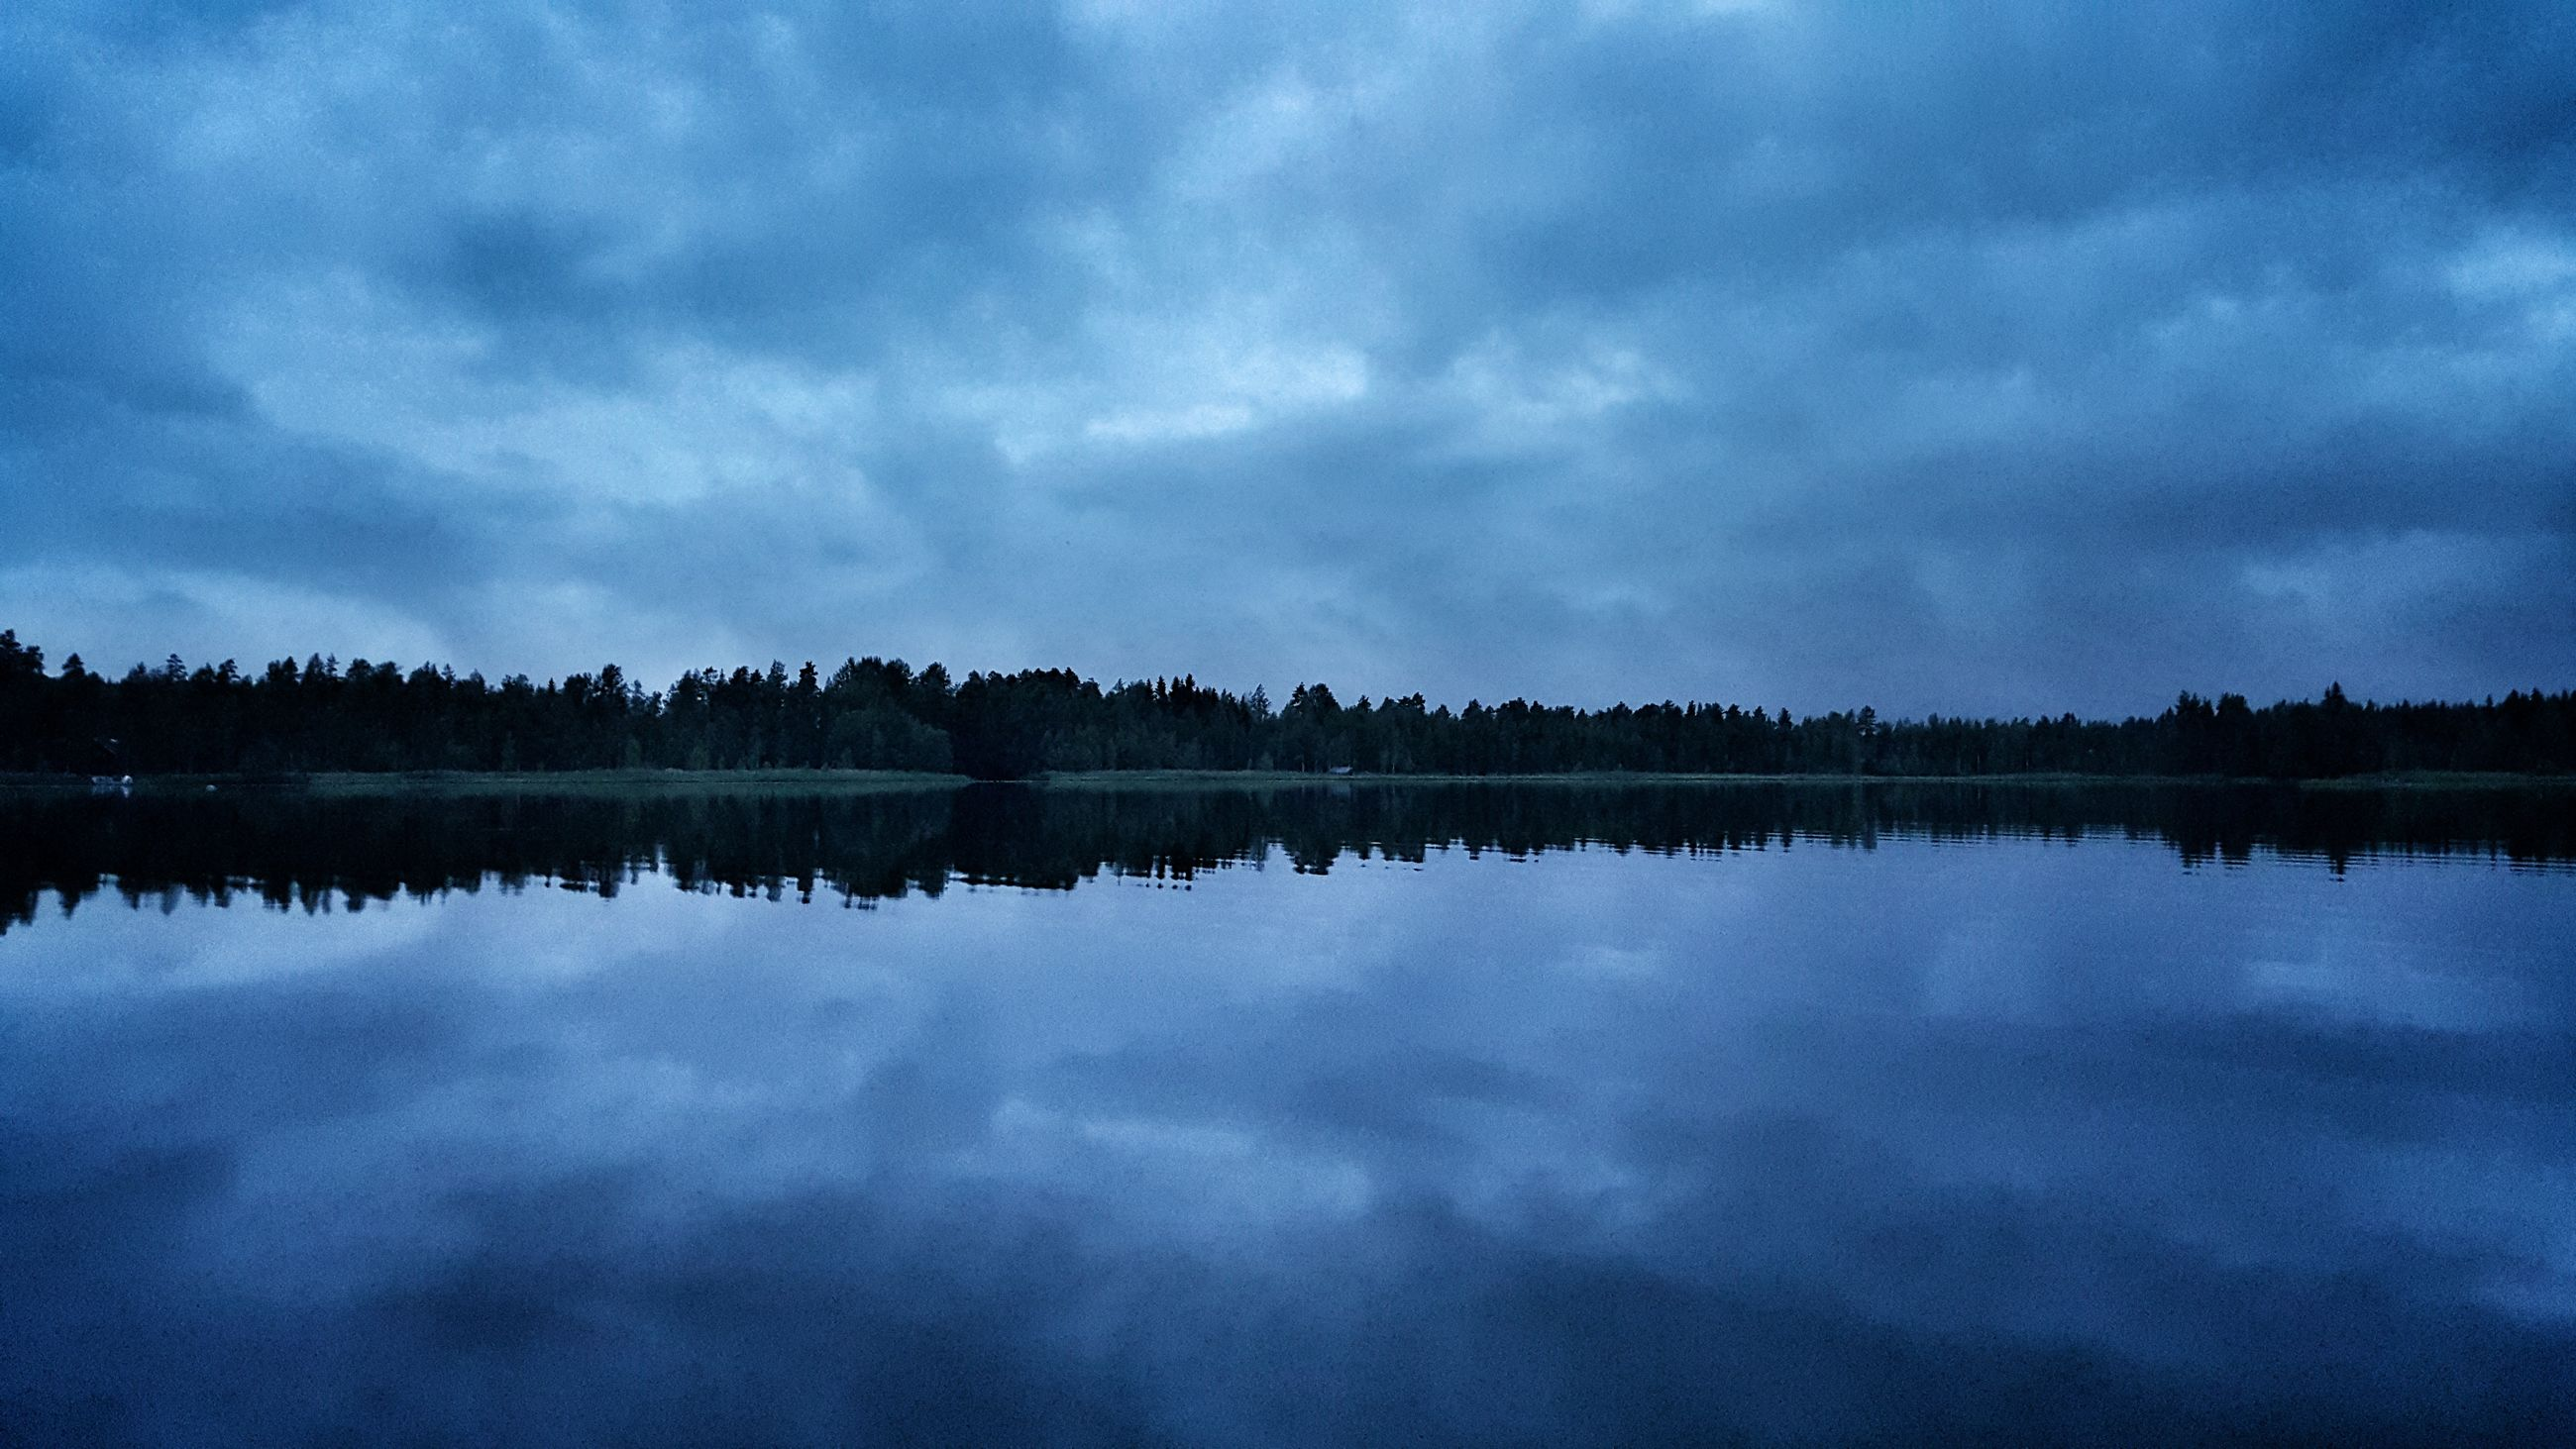 reflection, sky, cloud - sky, lake, nature, water, tranquility, beauty in nature, tree, tranquil scene, scenics, outdoors, no people, day